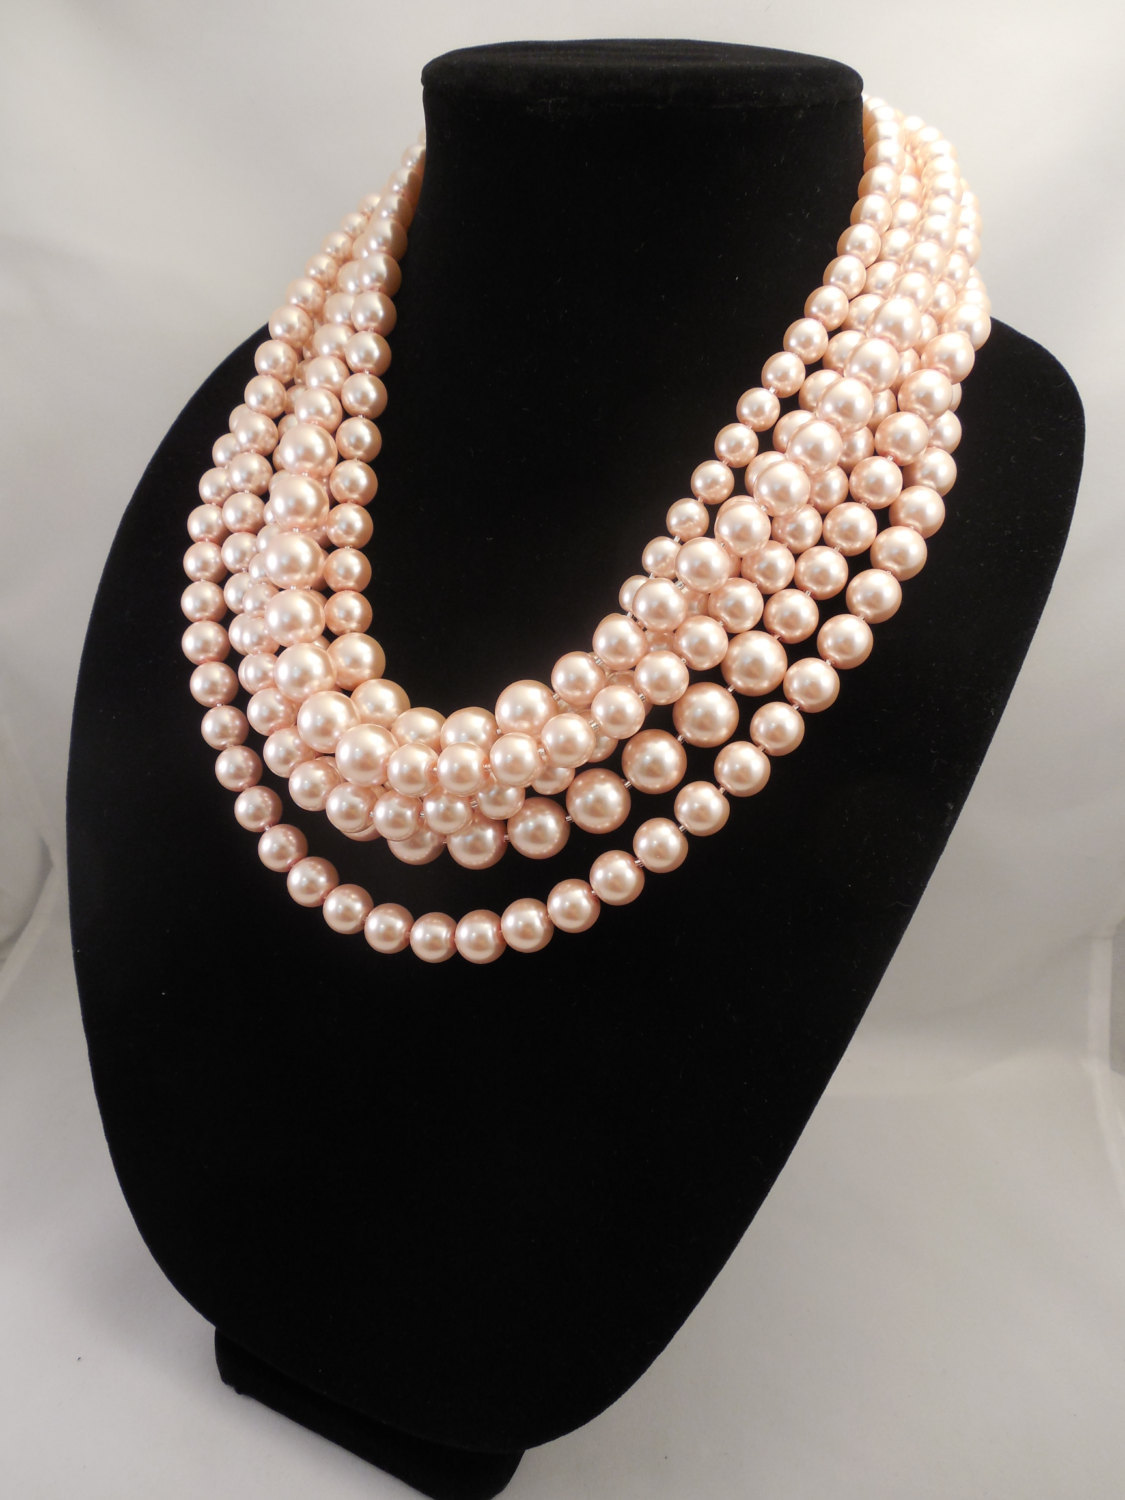 Very Elegant, Chunky Multi Strand Necklace with Blush Peach Pink Glass Pearls